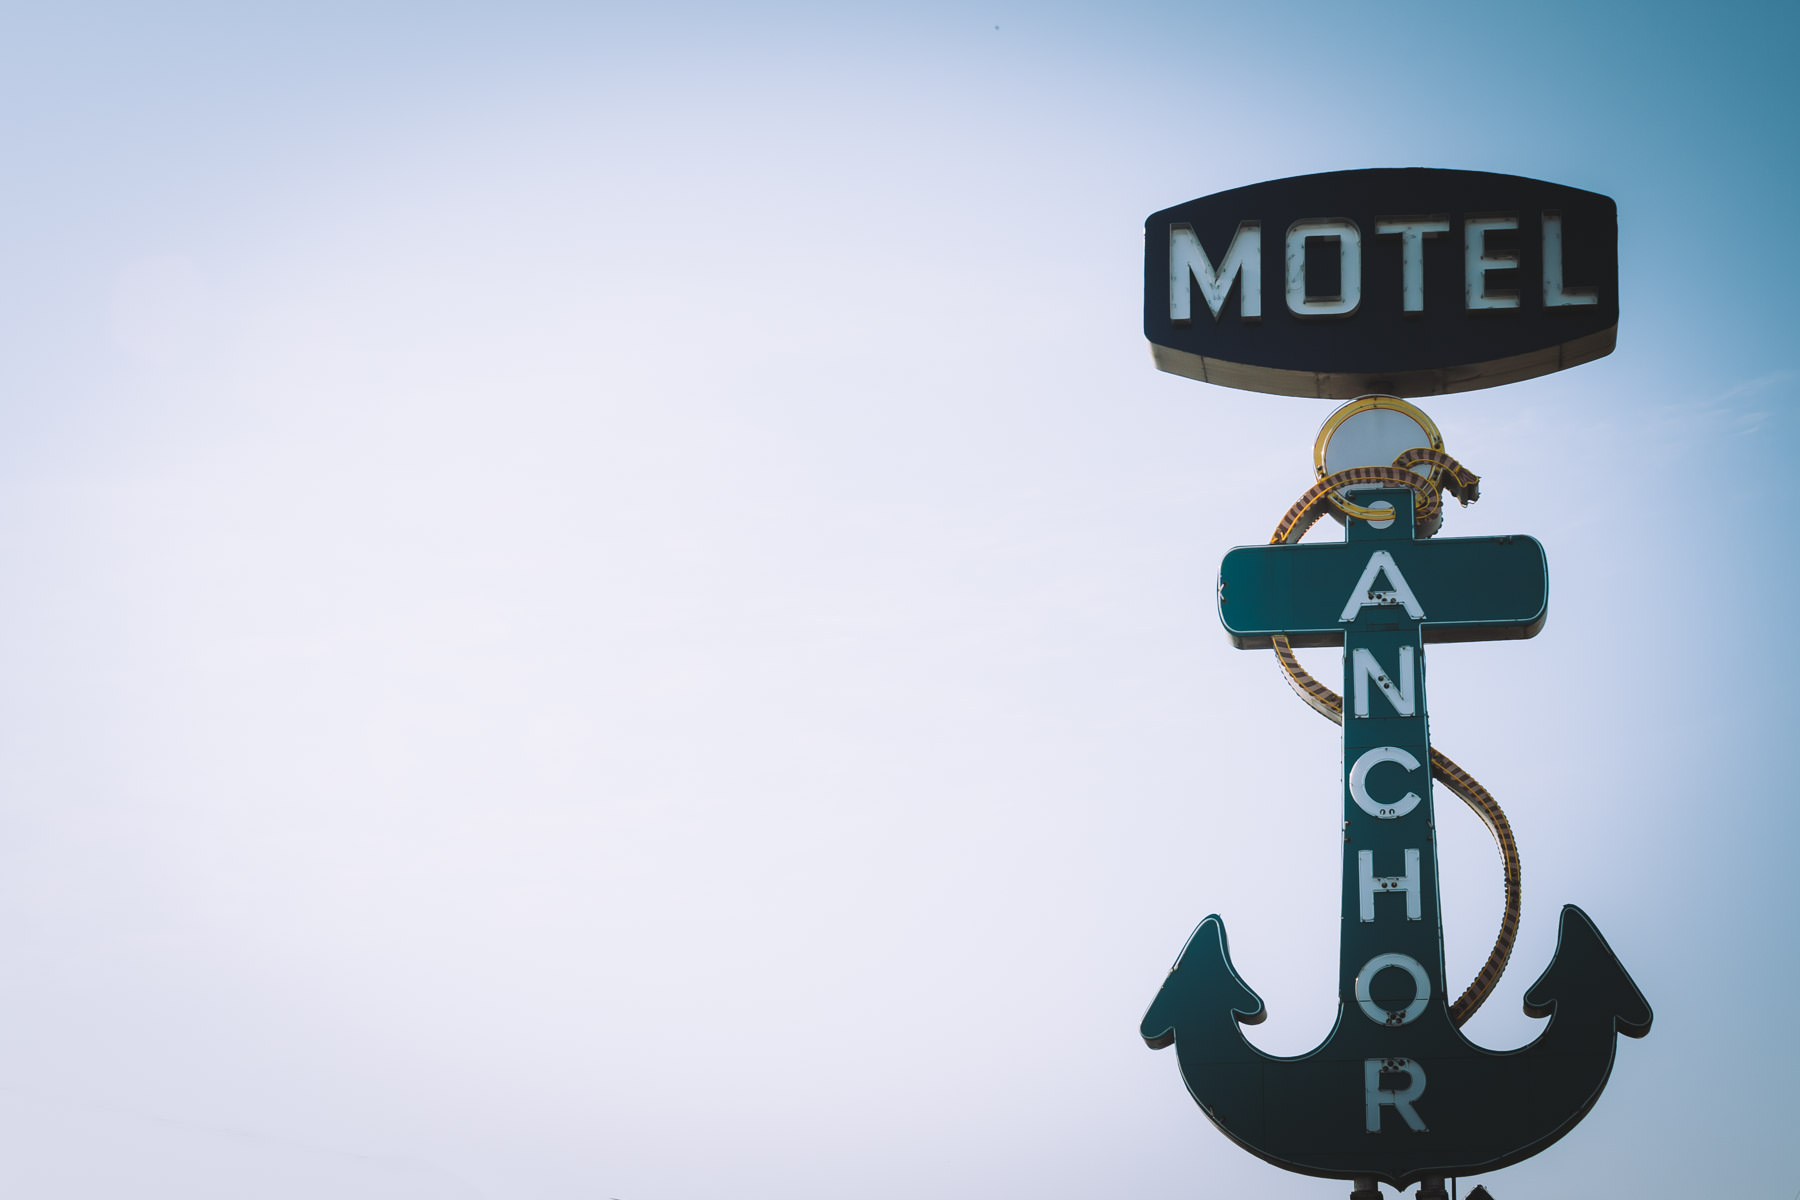 The sign for Dallas' Anchor Motel rises into the early-morning sky.